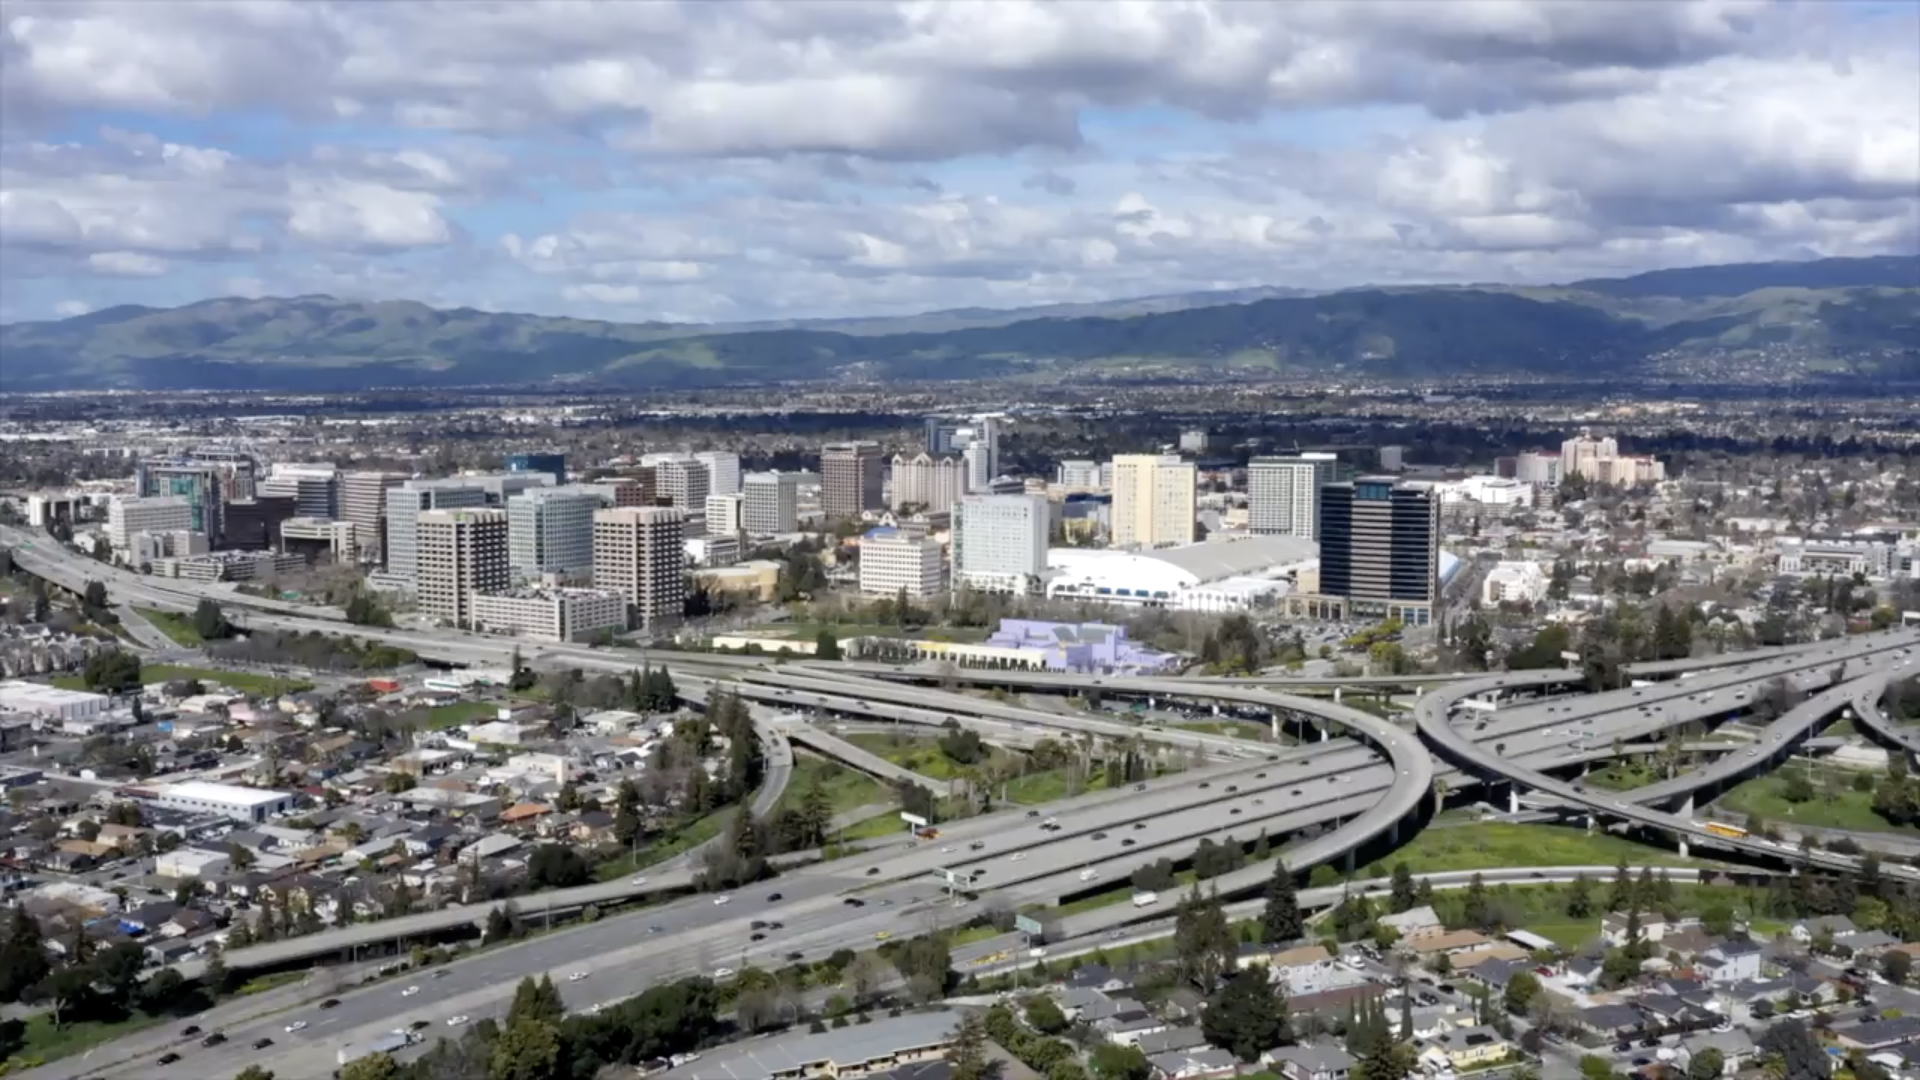 San Jose from above